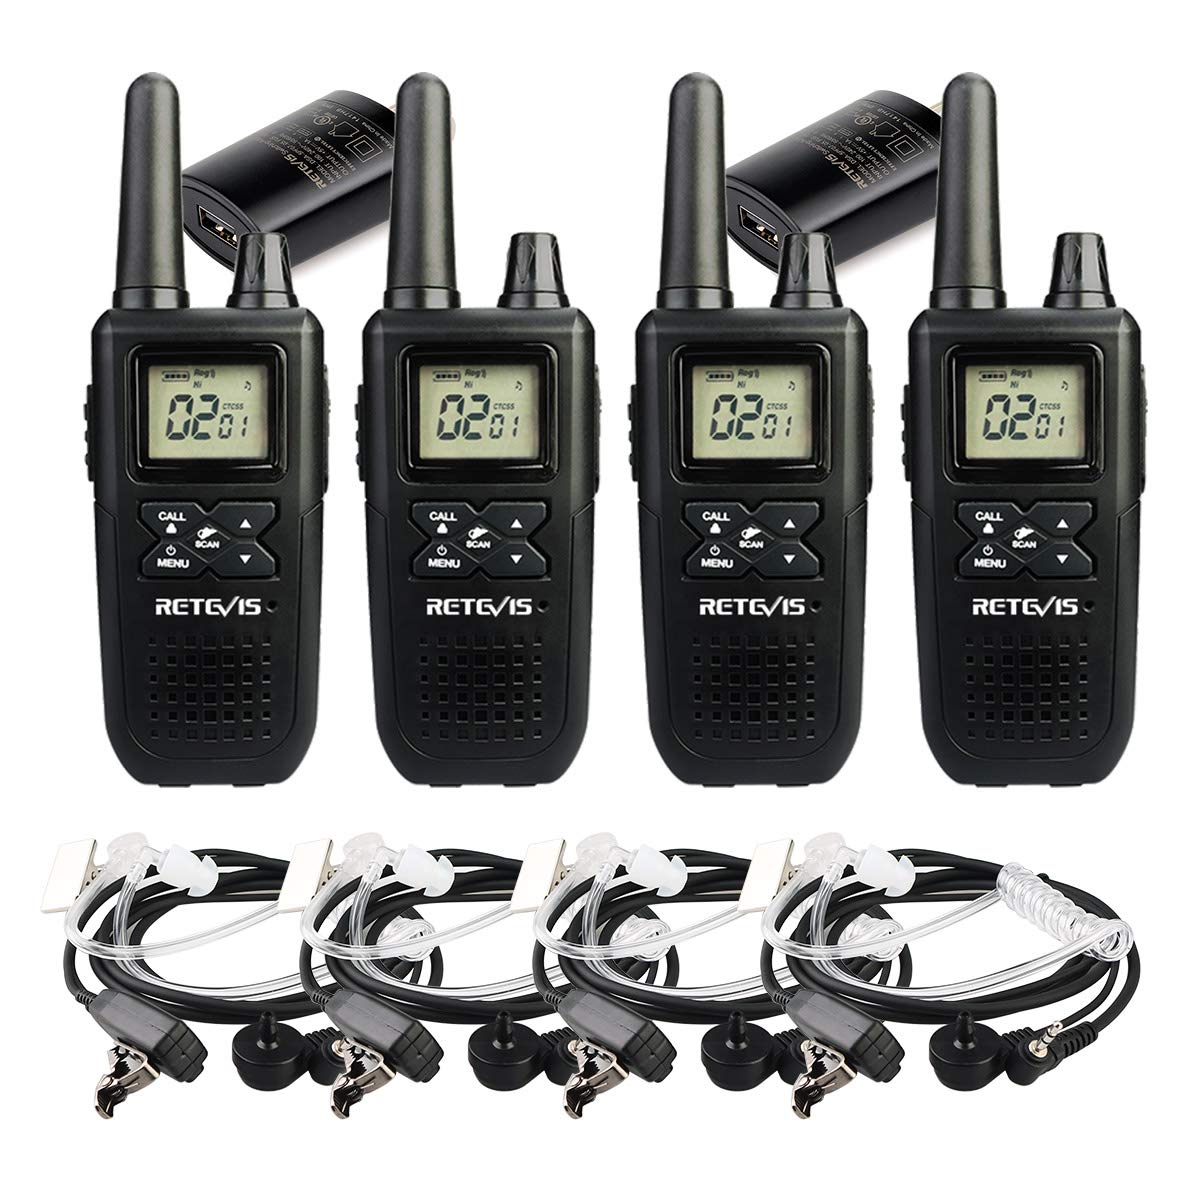 Retevis RT41 NOAA Walkie Talkies with Earpiece VOX 22 Channels 121 Privacy Codes 10 Call Alert LCD Display UHF FRS Rechargeable 2 Way Radio Cruise Ship Walkie Talkie for Adults Kids (4 Pack)